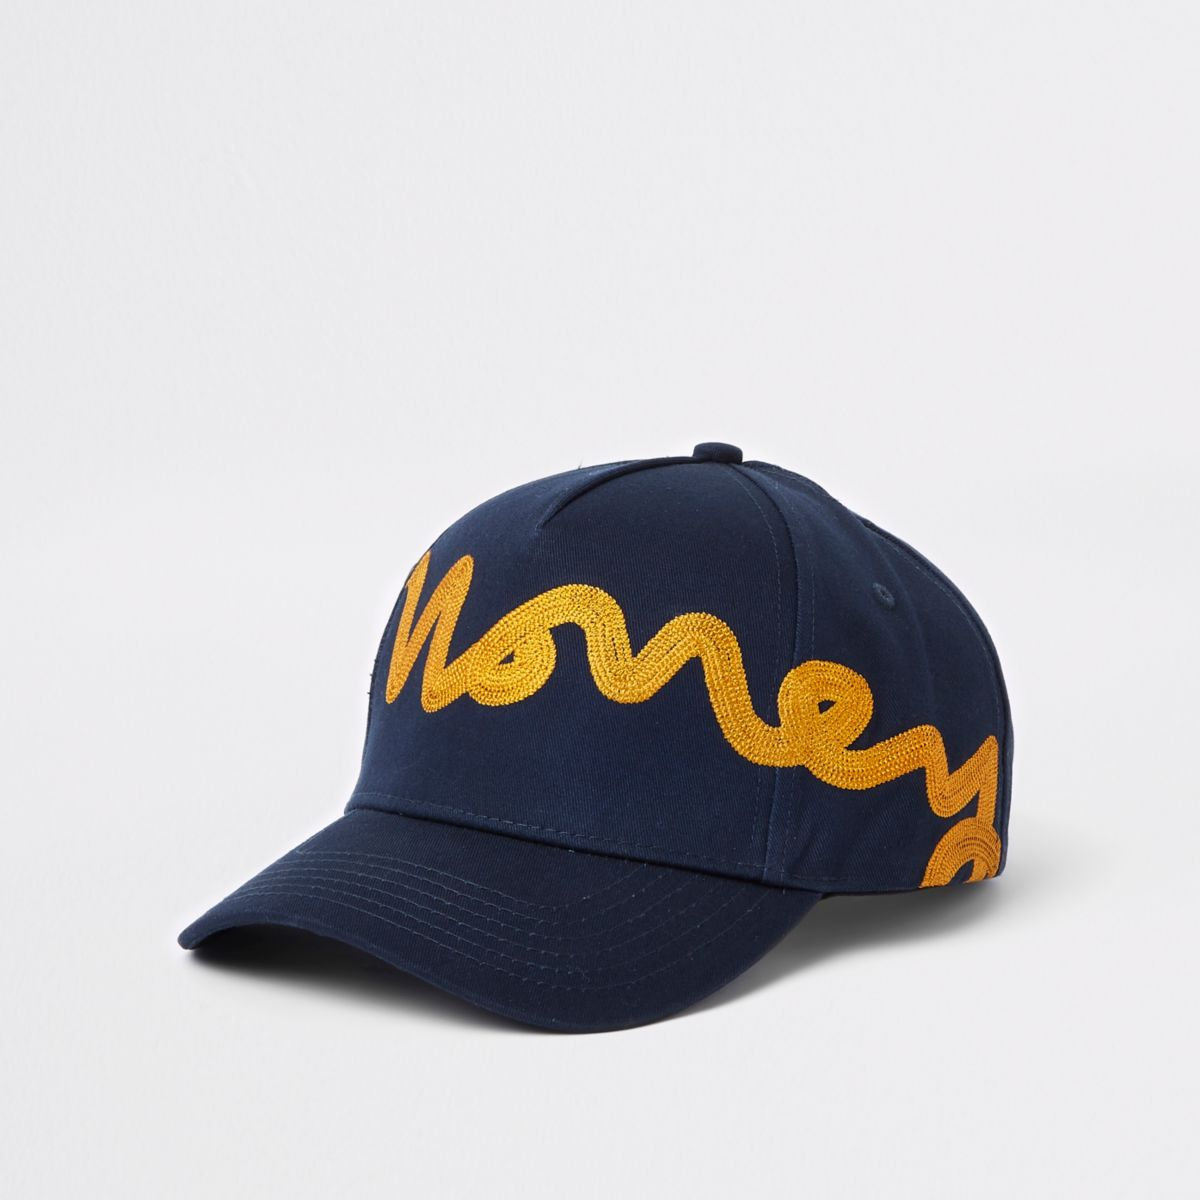 Money Clothing navy snapback cap